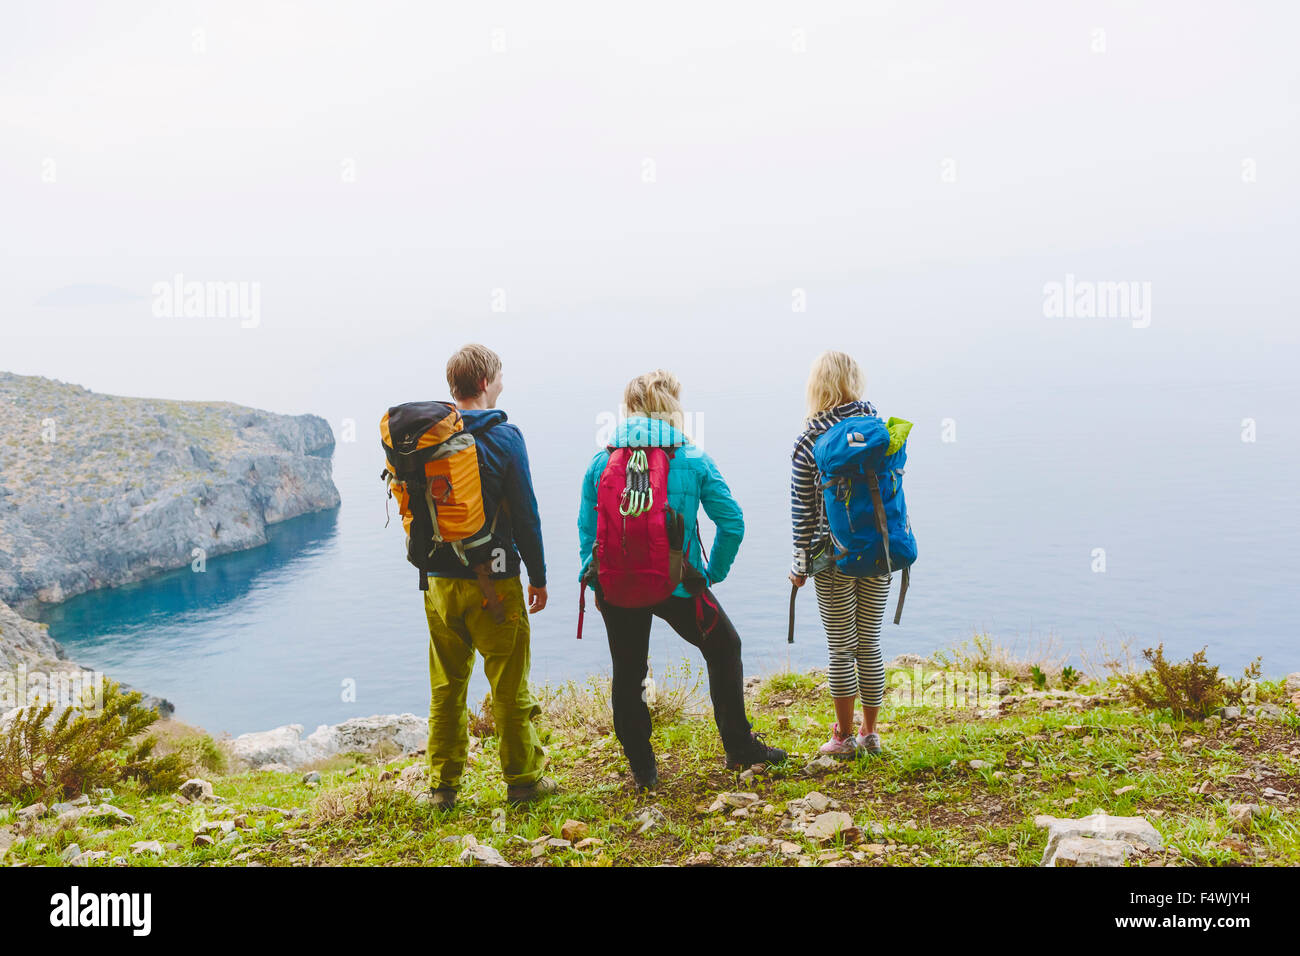 Greece, Dodecanese, Kalymnos, Backpackers looking at sea - Stock Image